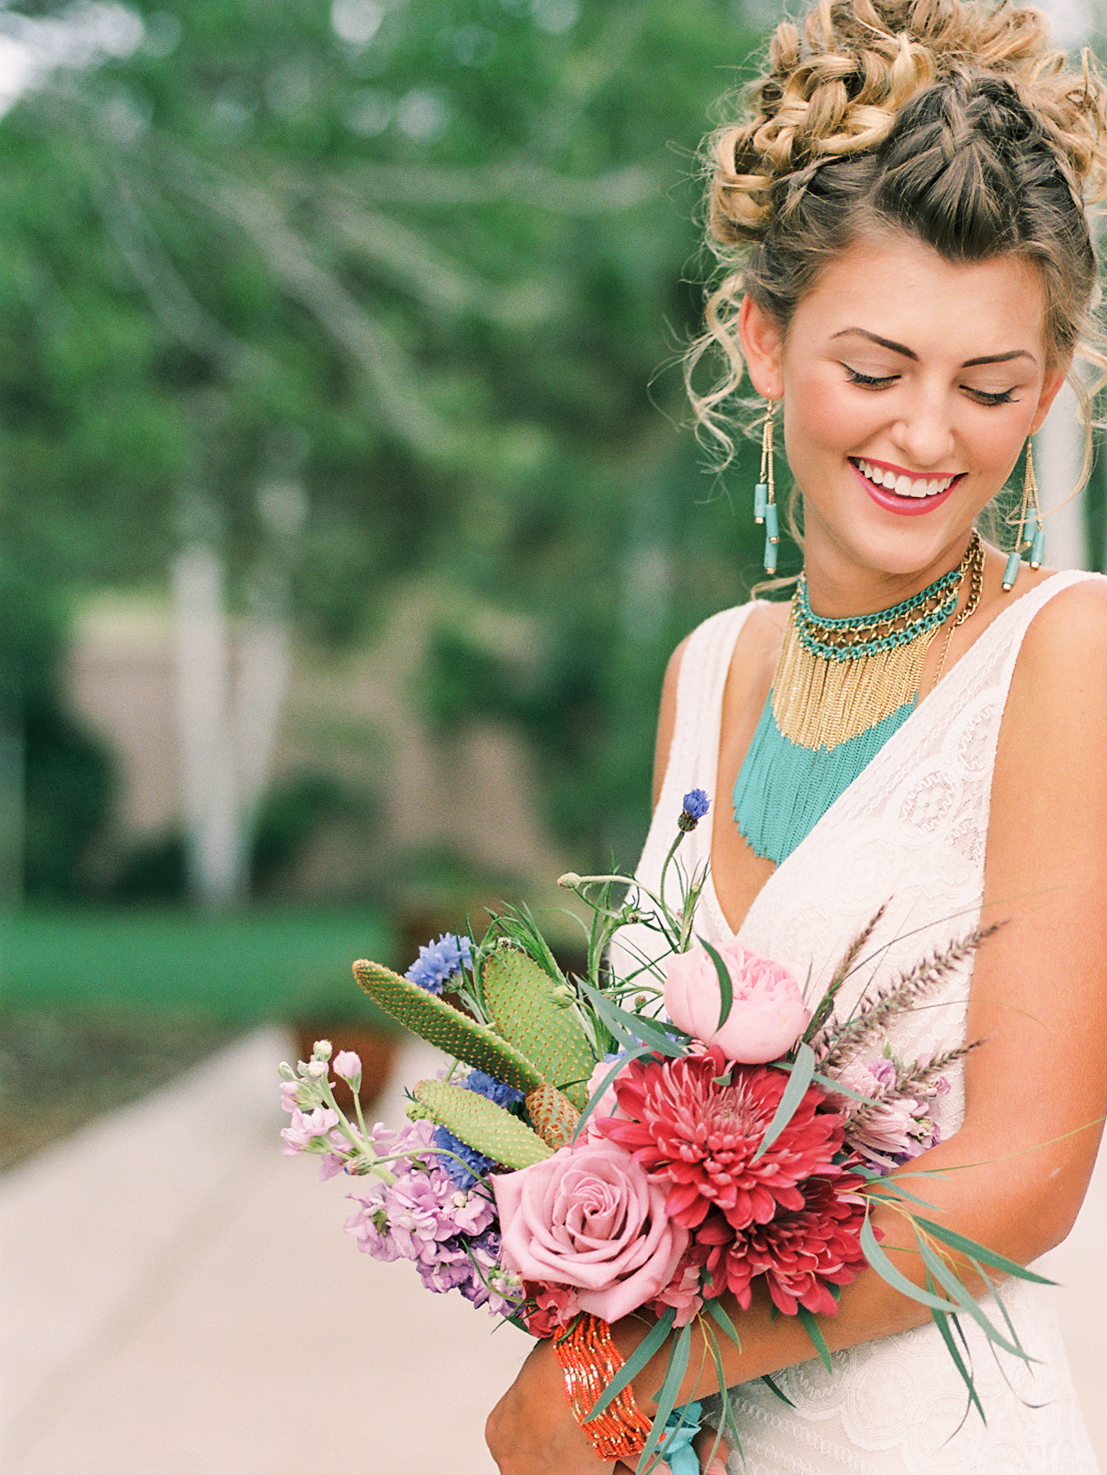 Southwest wedding inspiration - flowers by Lace and Lilies - colorful cacti bouquet